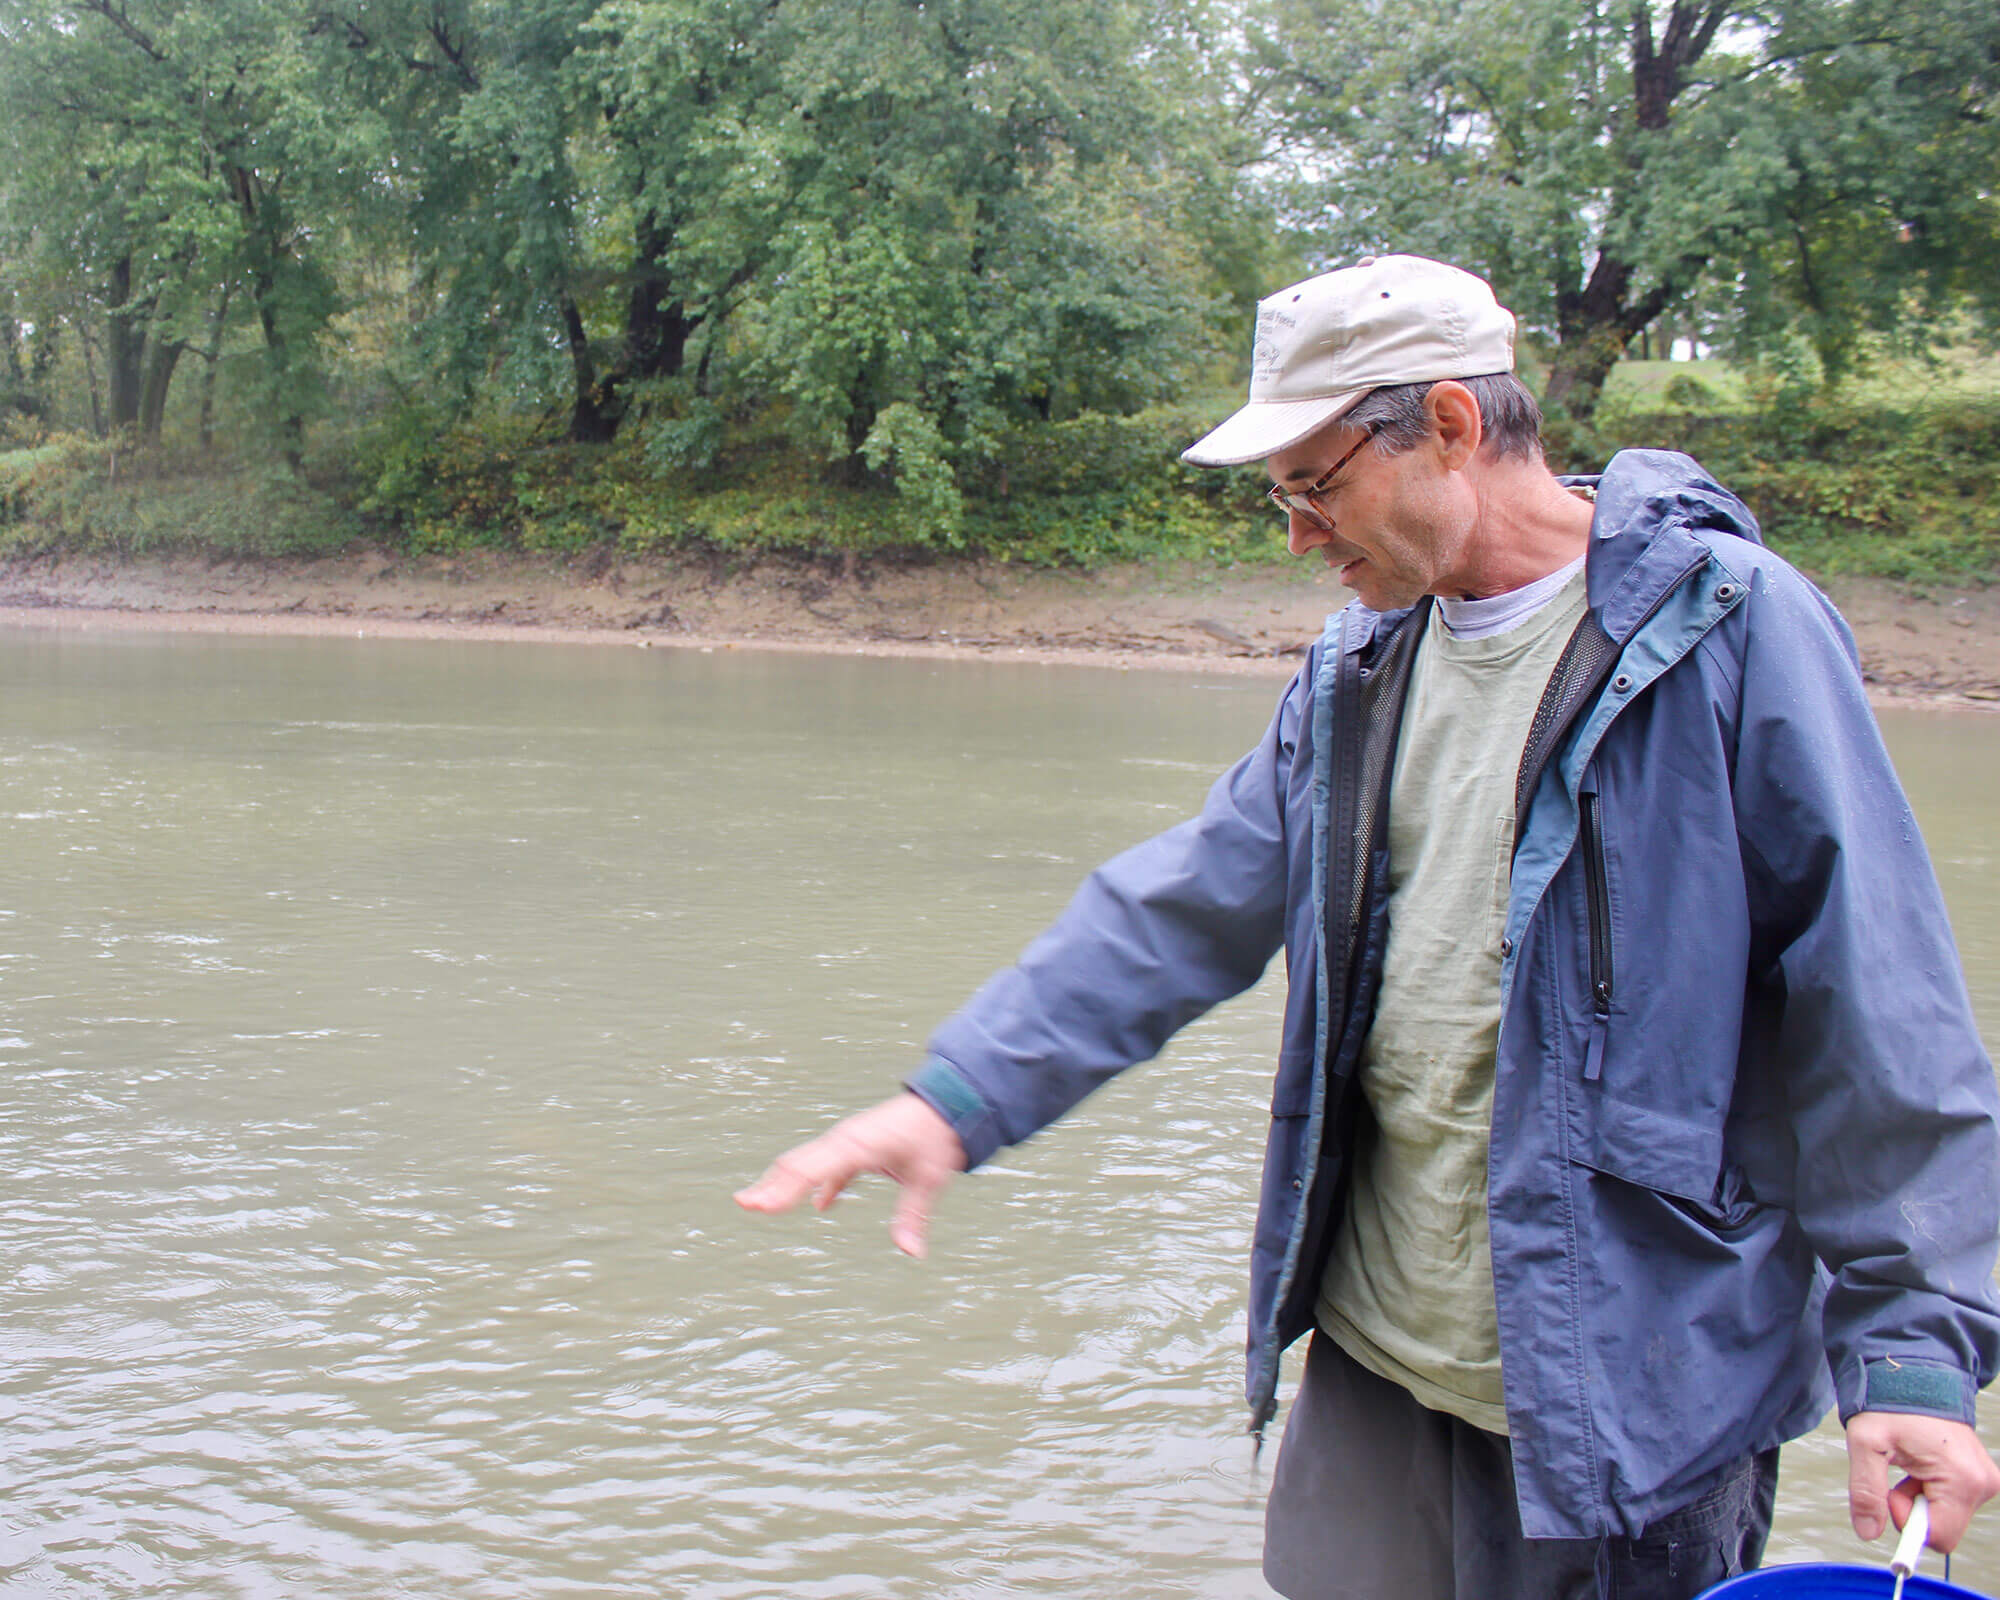 U.S. Forest Service Fisheries Research Biologist Wendell R. Haag talks about the freshwater mussels that live in this stretch of the Licking River near Butler, Kentucky. (Photo by Carrie Blackmore Smith/PublicSource)